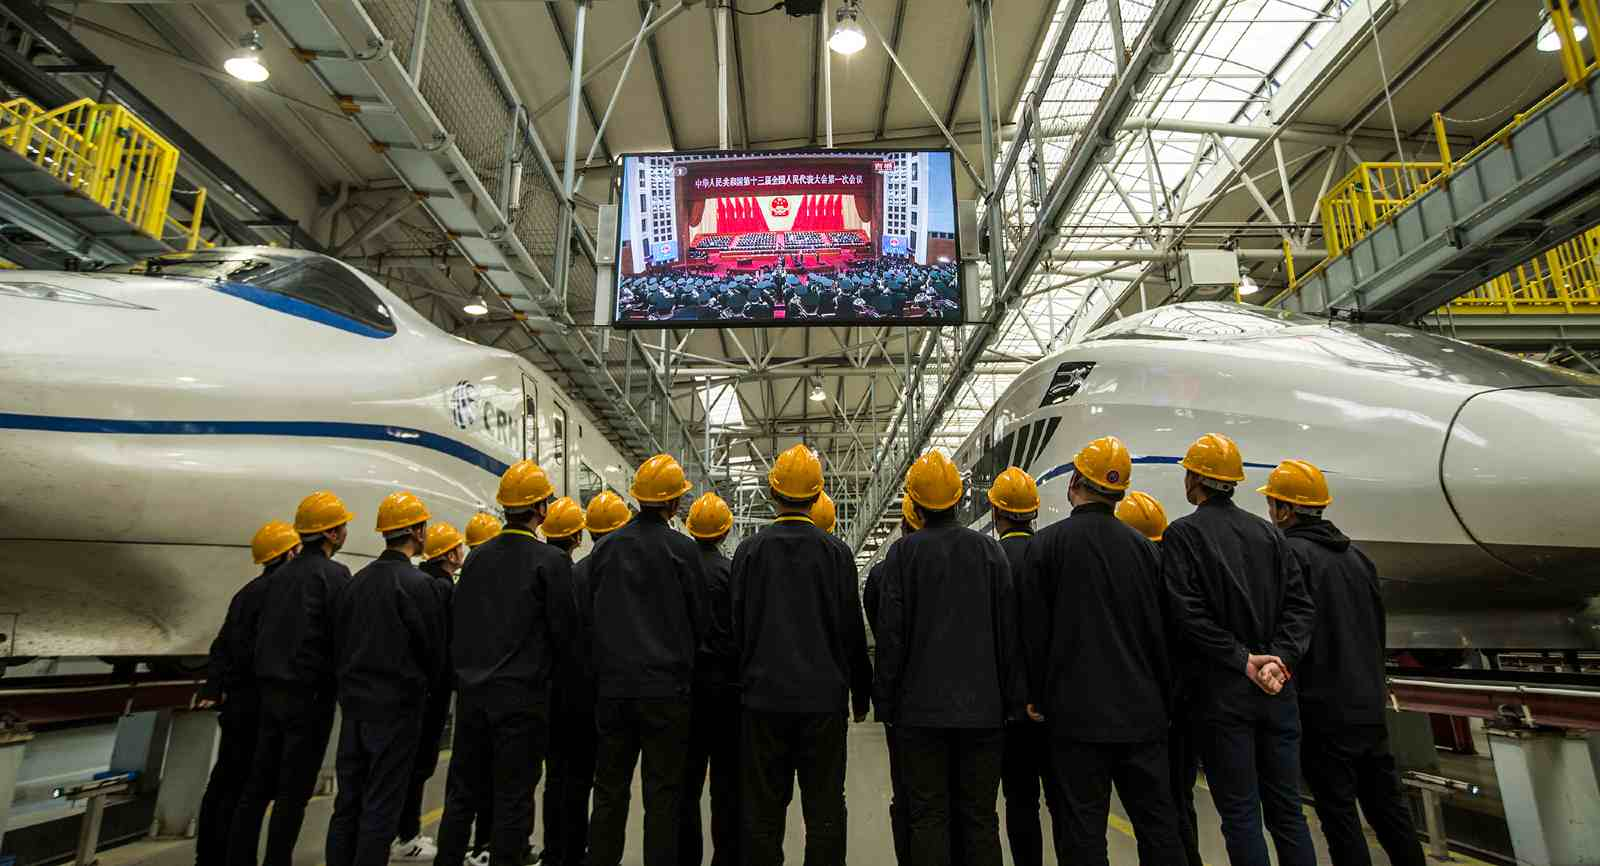 Photo: Chinese workers of CRH (China Railway High-speed) watch the live broadcast of Chinese Premier Li Keqiang delivering a government work report during the opening meeting for the First Session of the 13th National People's Congress (NPC) at a maintenance station in Xi'an city, northwest China's Shaanxi province, March 5, 2018. Credit: Oriental Image via Reuters.